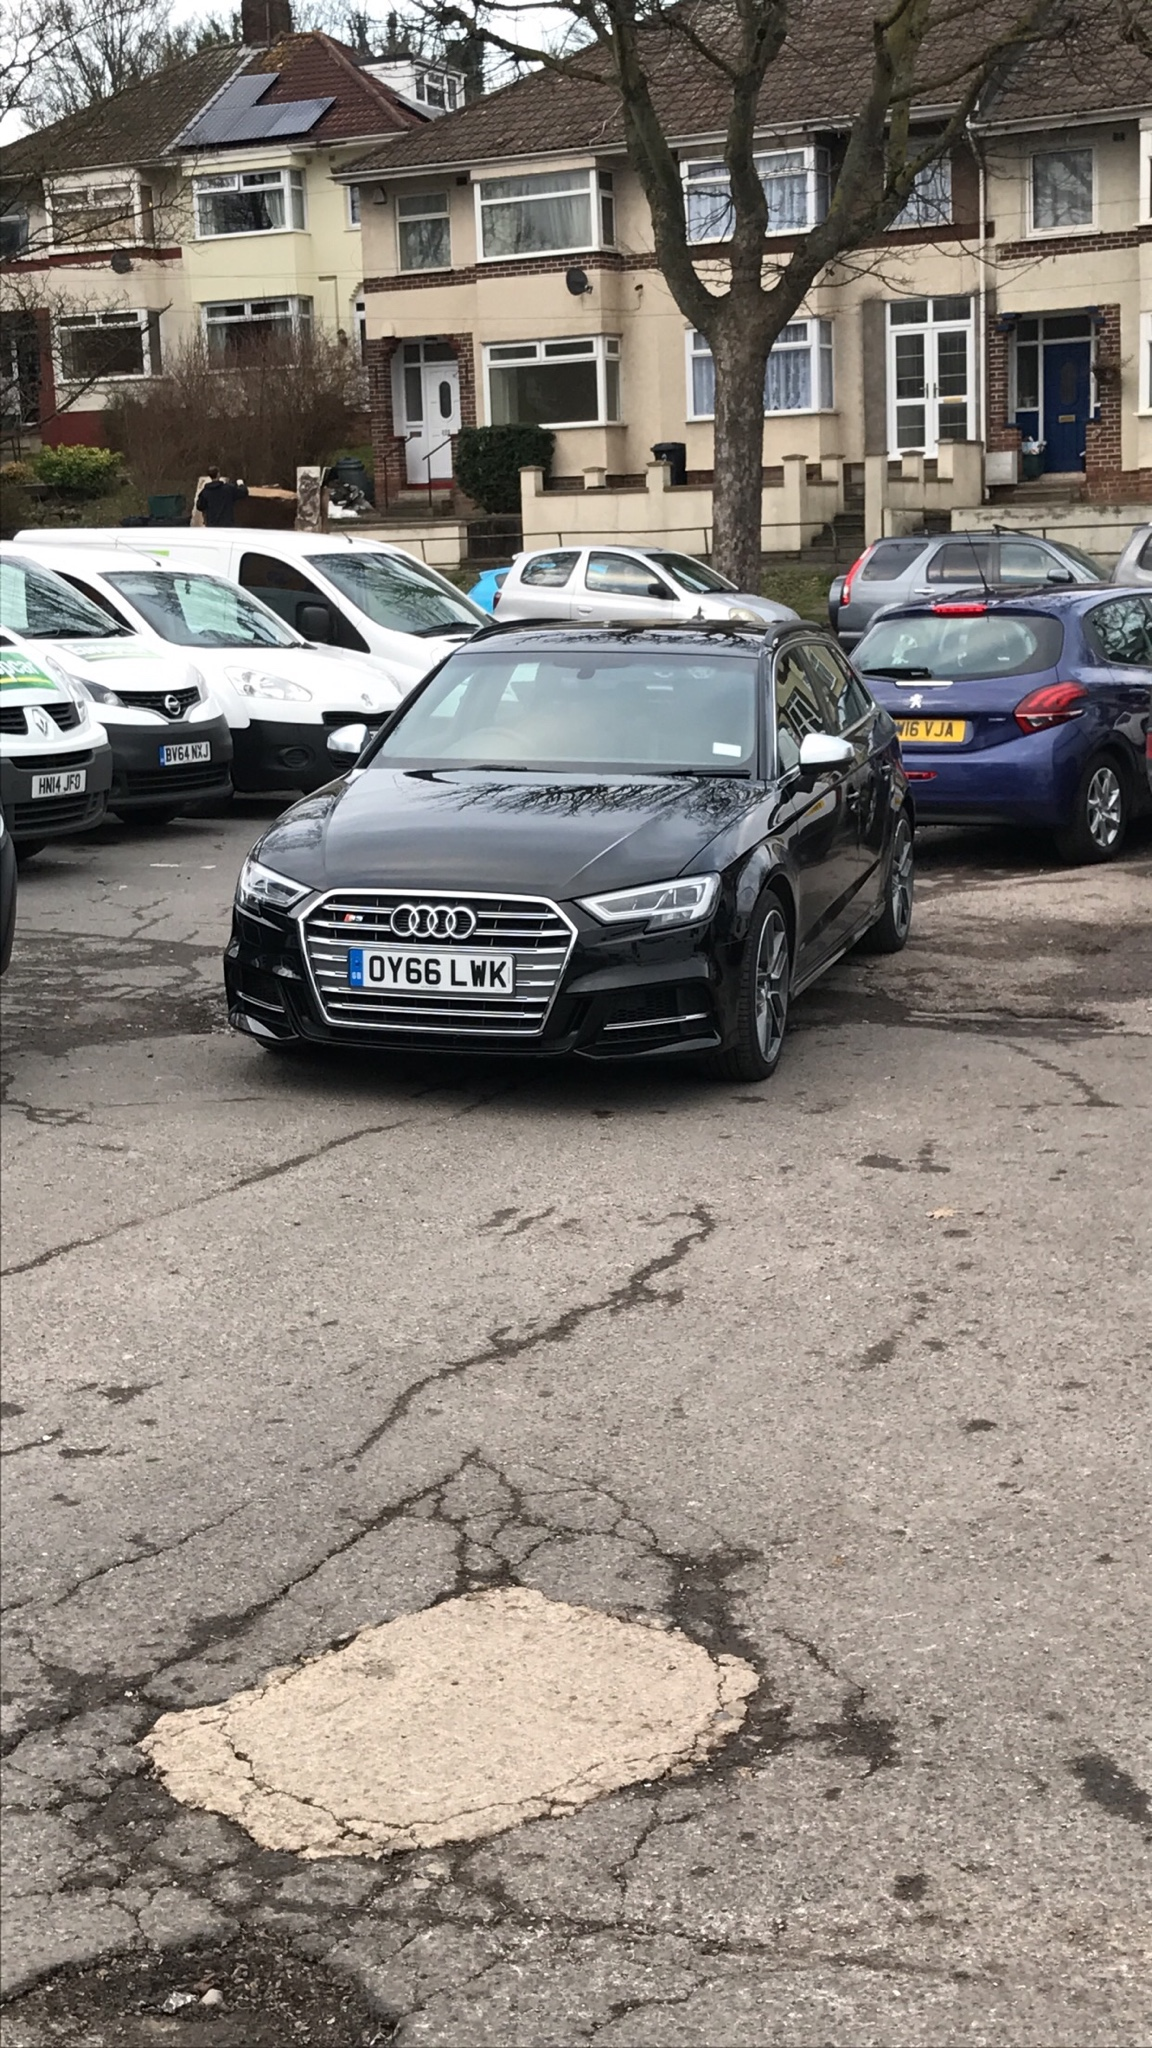 Gearbox Malfunction, what should I expect from Audi? S3, 6 months